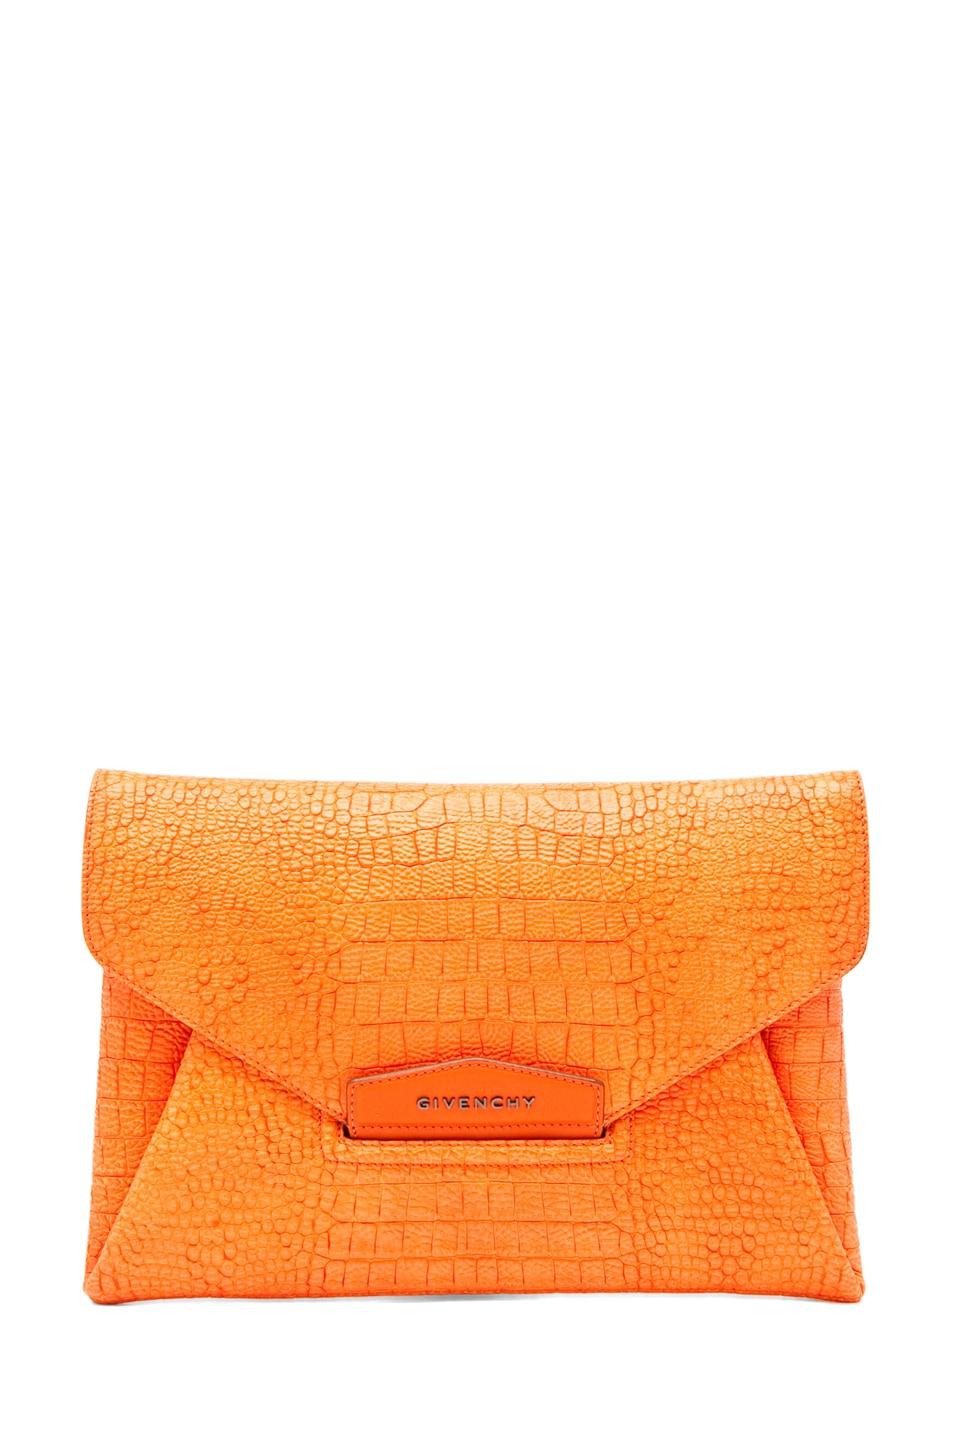 Image 1 of GIVENCHY Envelope Clutch in Orange